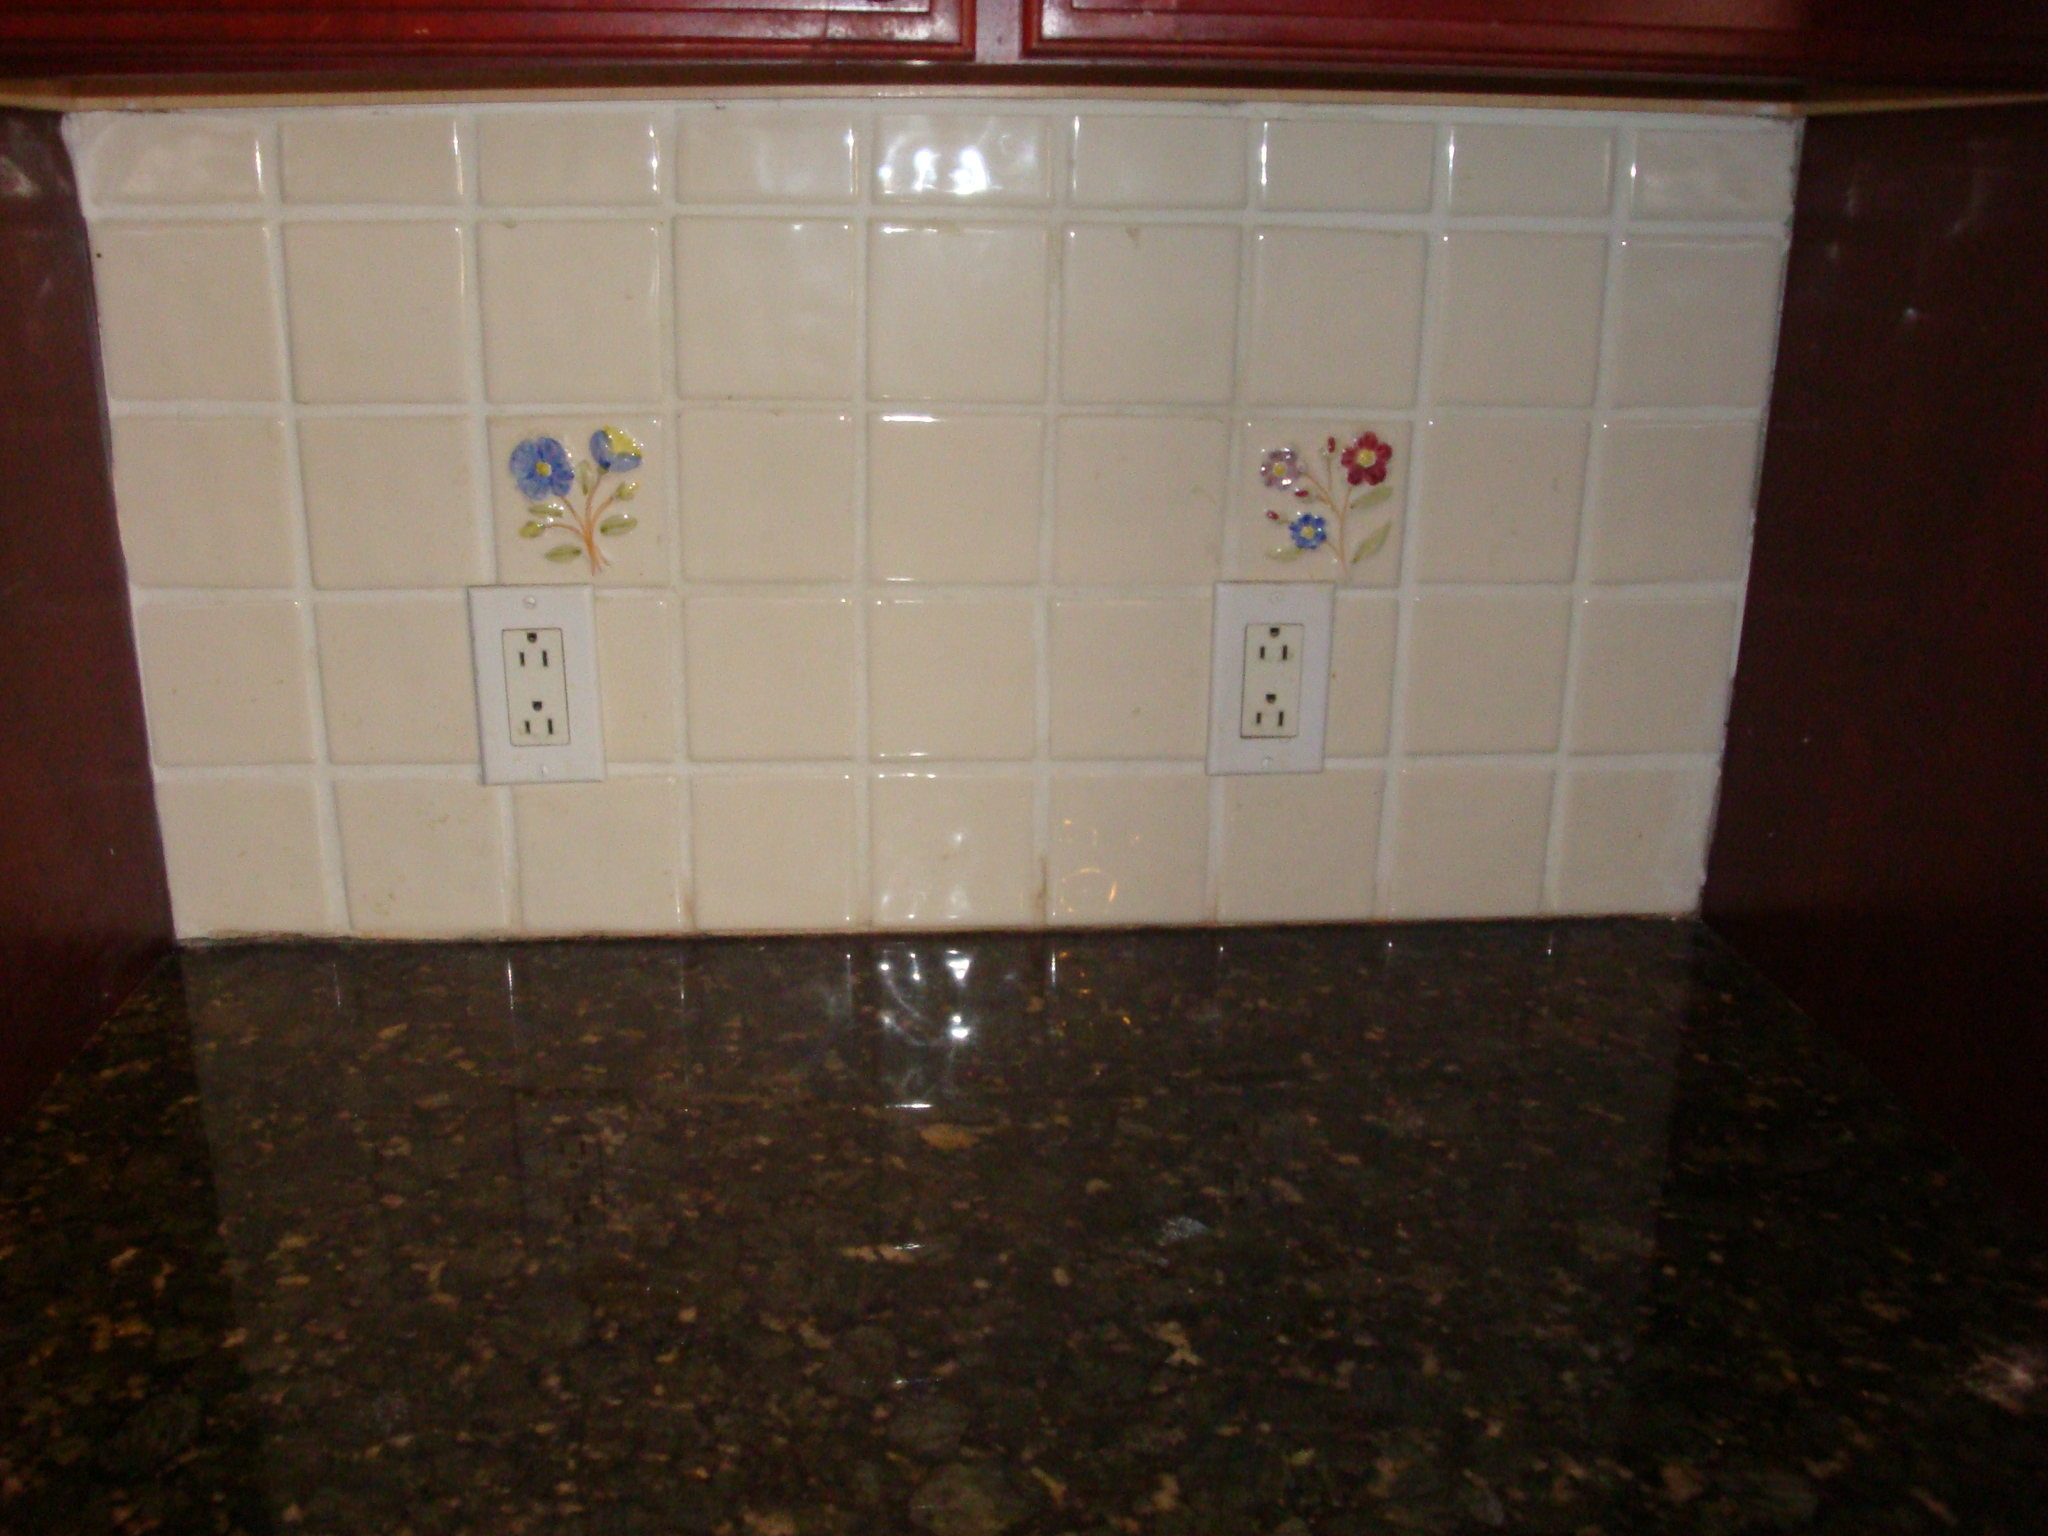 Kitchen Backsplash Removal removing tile backsplash how to remove a kitchen tile backsplash